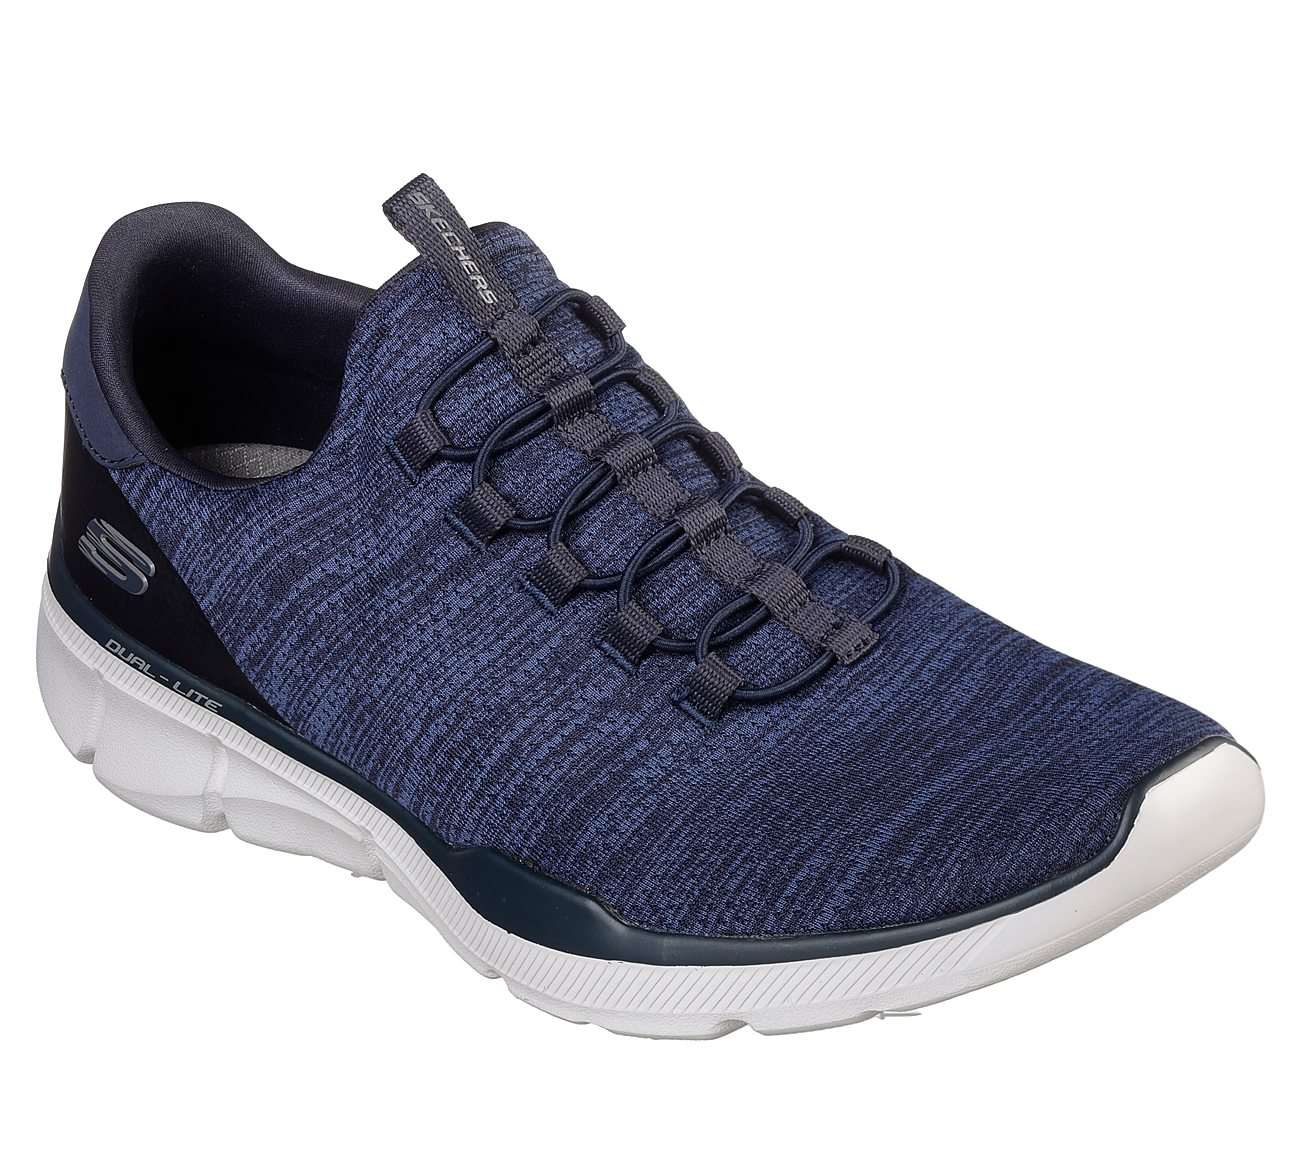 Buy SKECHERS Relaxed Fit: Equalizer 3.0 Emrick Relaxed Fit z9CaS